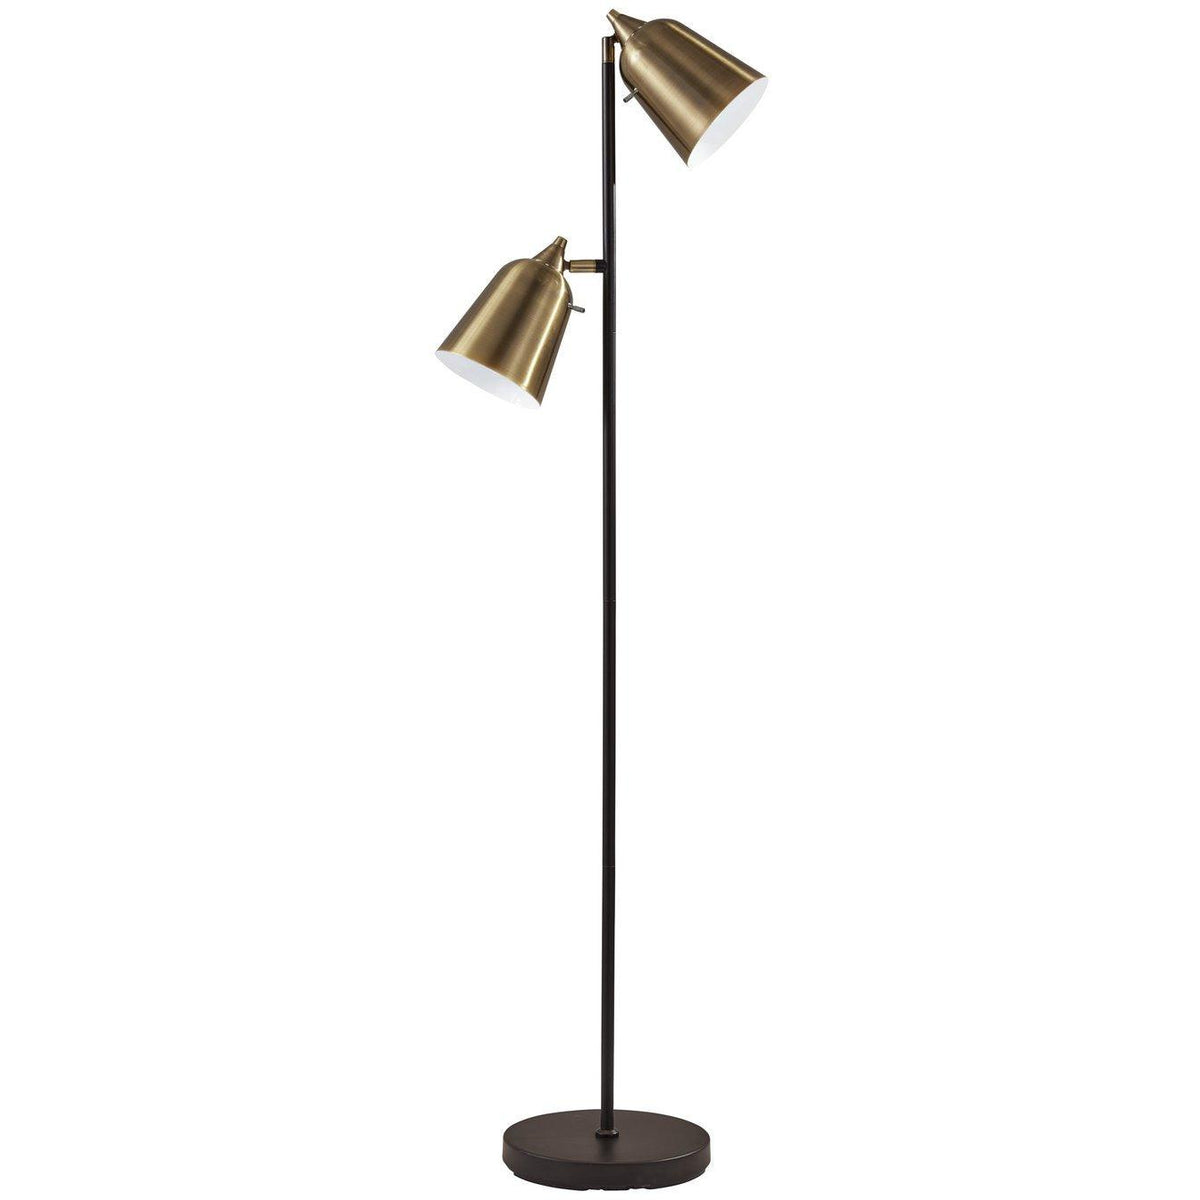 Adesso Home - 3237-01 - Two Light Floor Lamp - Malcolm - Matte Black/Antique Brass